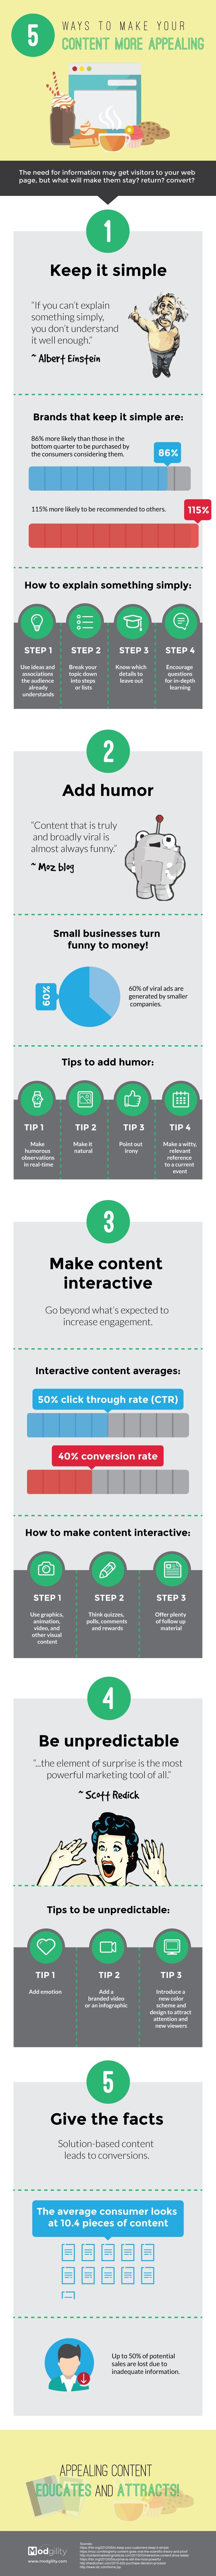 Final-5-ways-to-make-content-appealing-compressed